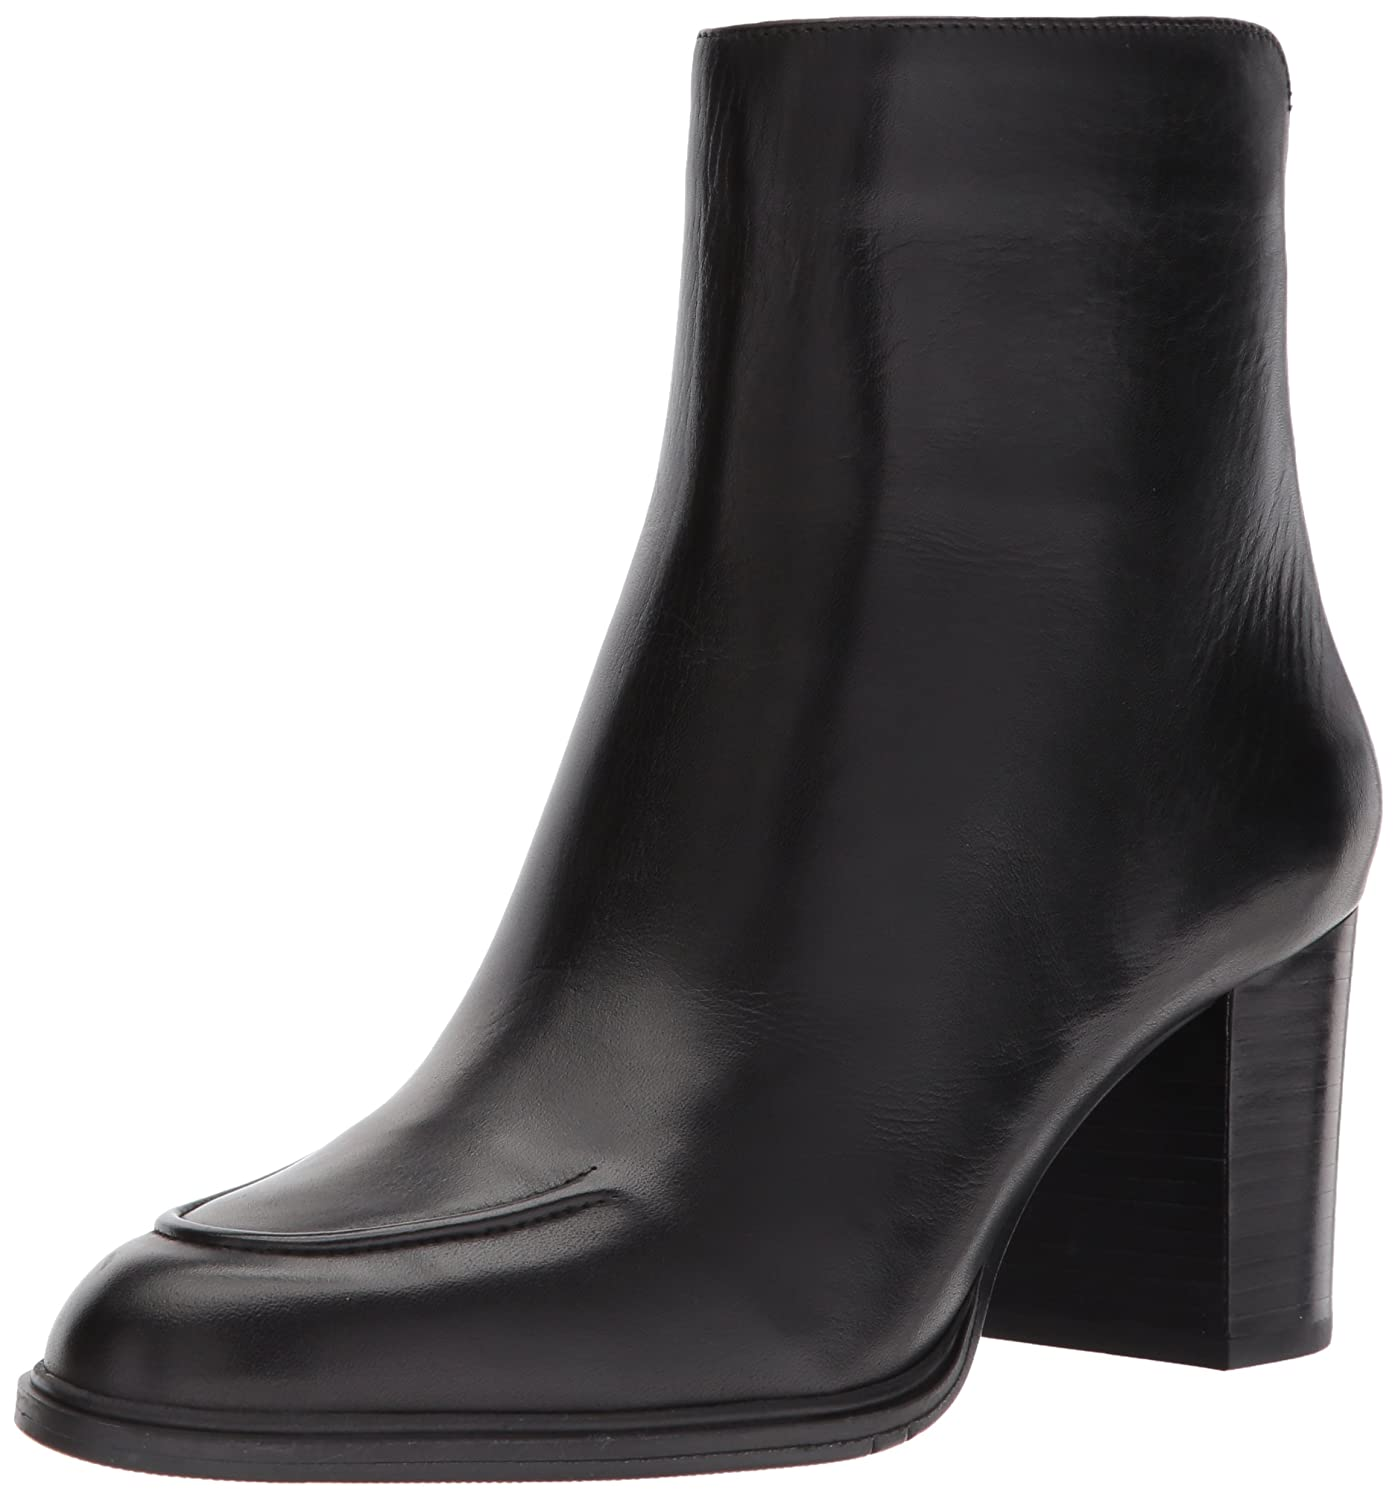 Aerosoles Women's City Council Ankle Boot B06Y5RP67N 9.5 B(M) US|Black Leather